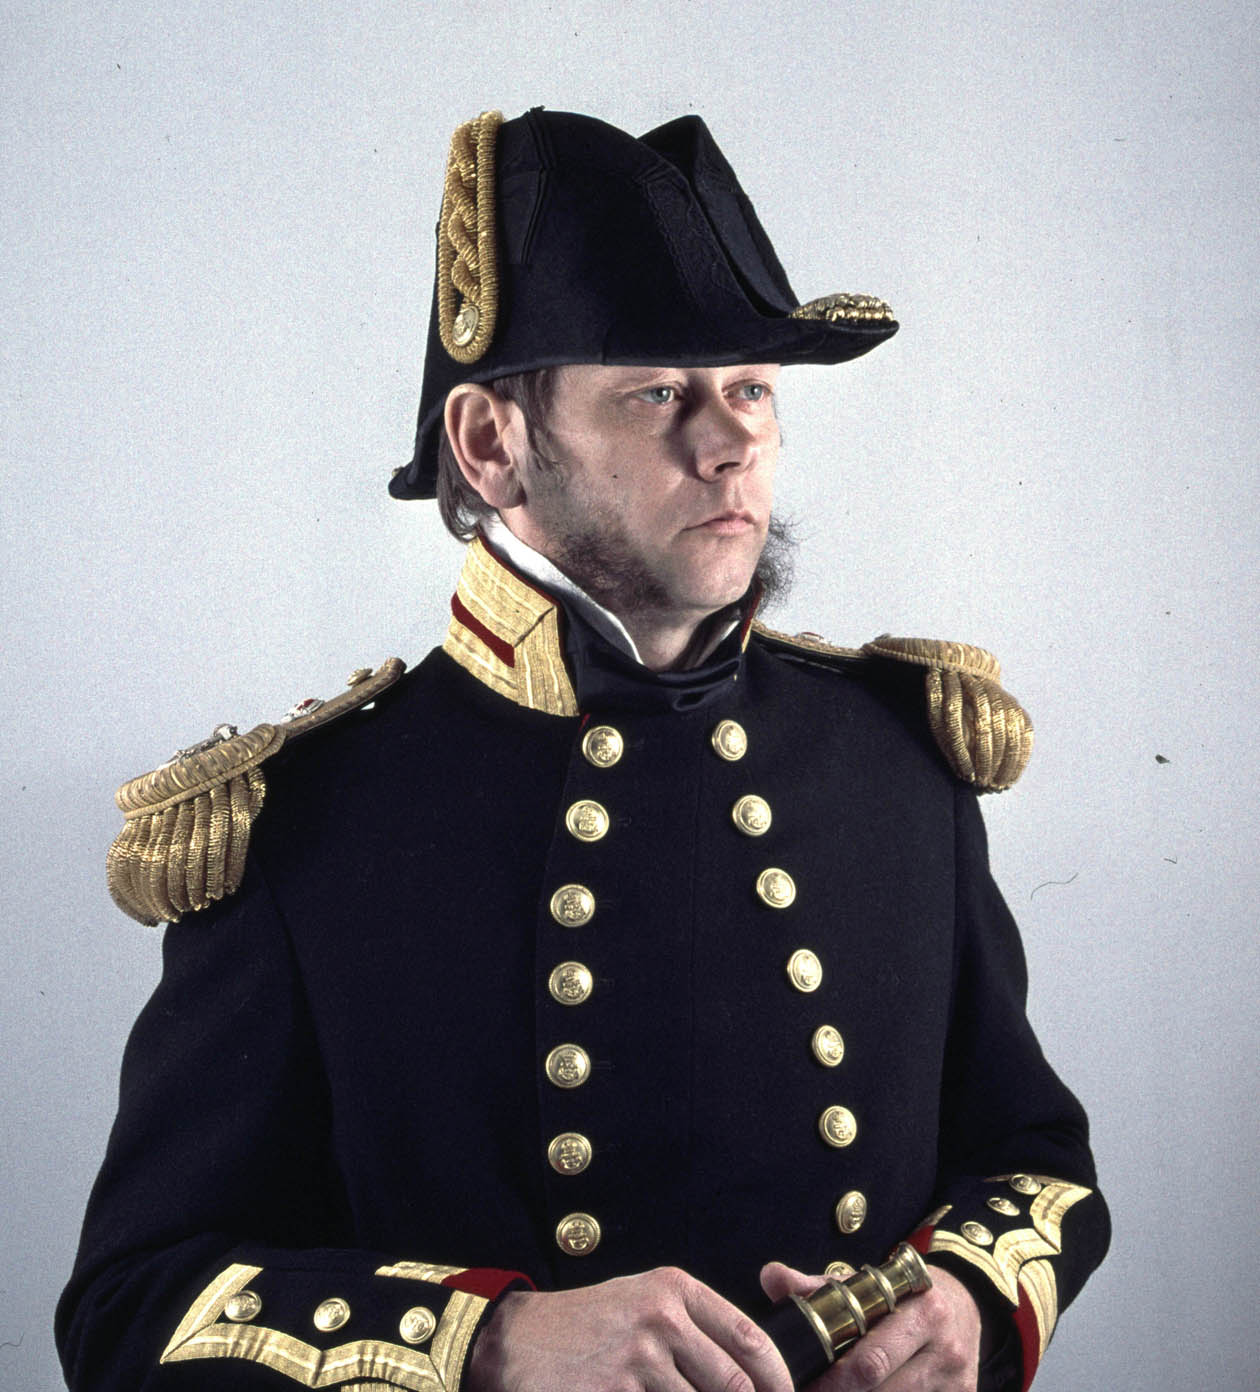 Philip Collins of Barometer World as Captain Robert FitzRoy